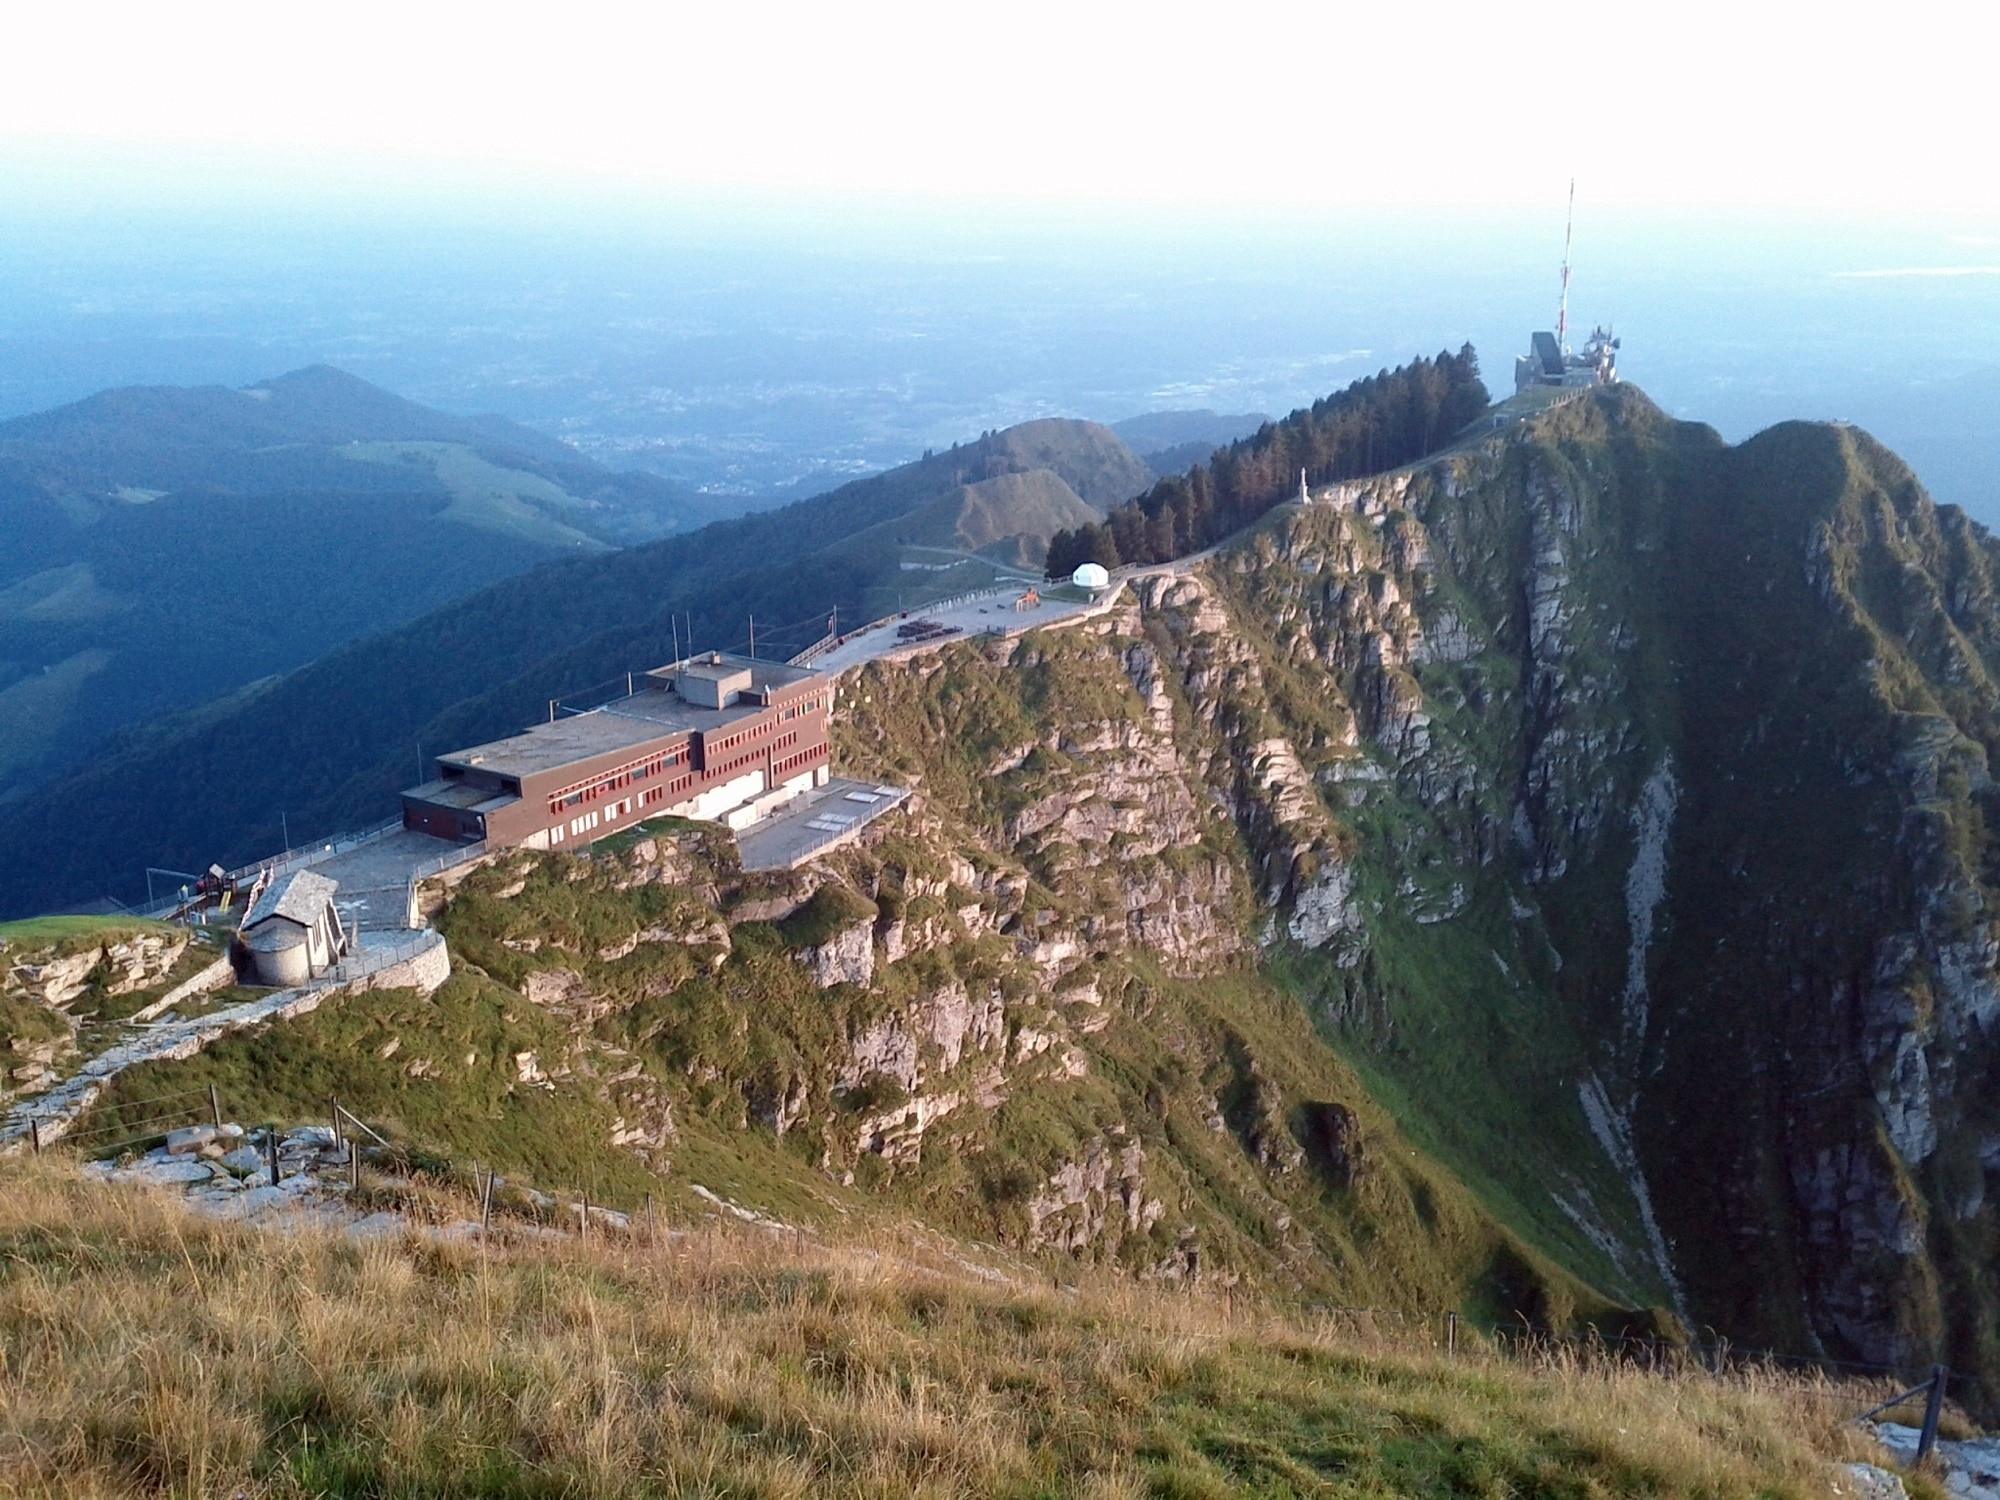 The La Vetta restaurant and the top of the cog railway on Monte Generoso.